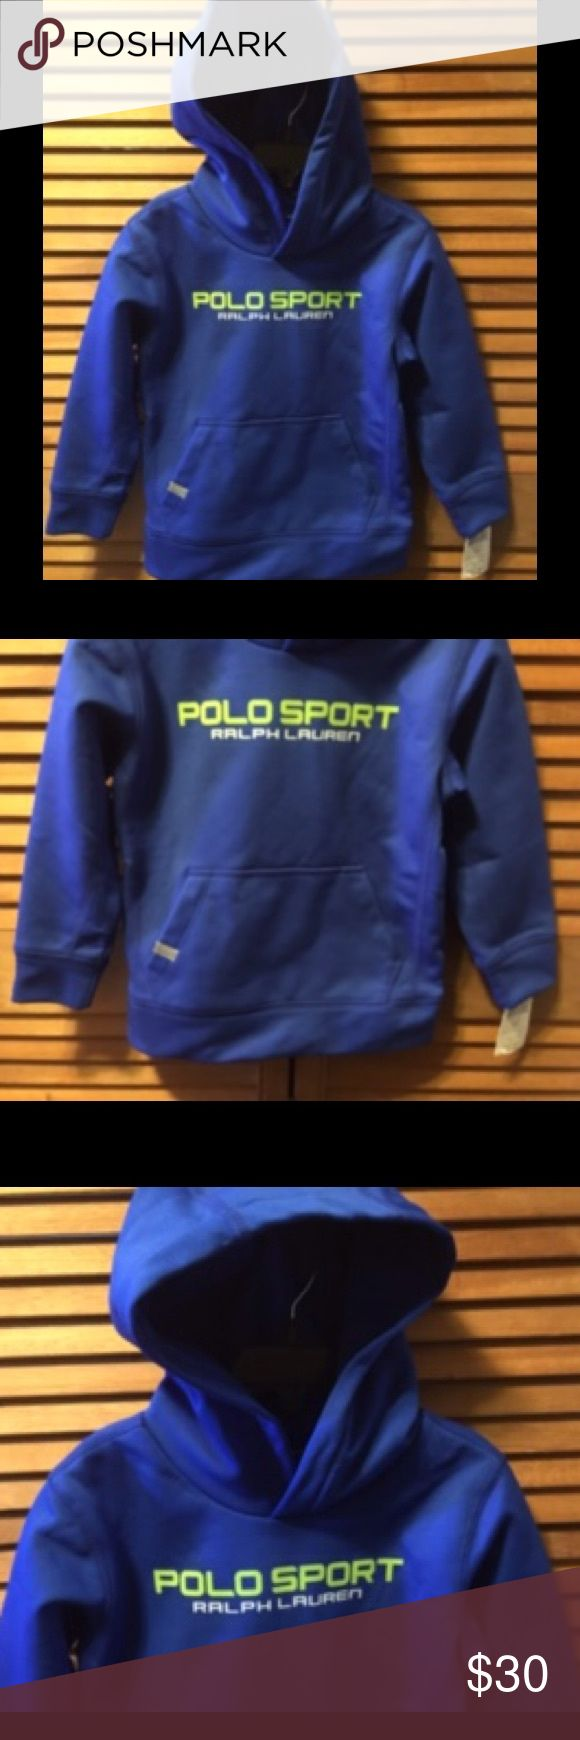 Polo Sport Ralph Lauren Royal Blue Hoodie Royal blue hoodie with lime green and white lettering on the front and Polo P67 on back left side, front hand warming pockets with lined hood. 4T. 100% polyester. NWT Polo by Ralph Lauren Shirts & Tops Sweatshirts & Hoodies